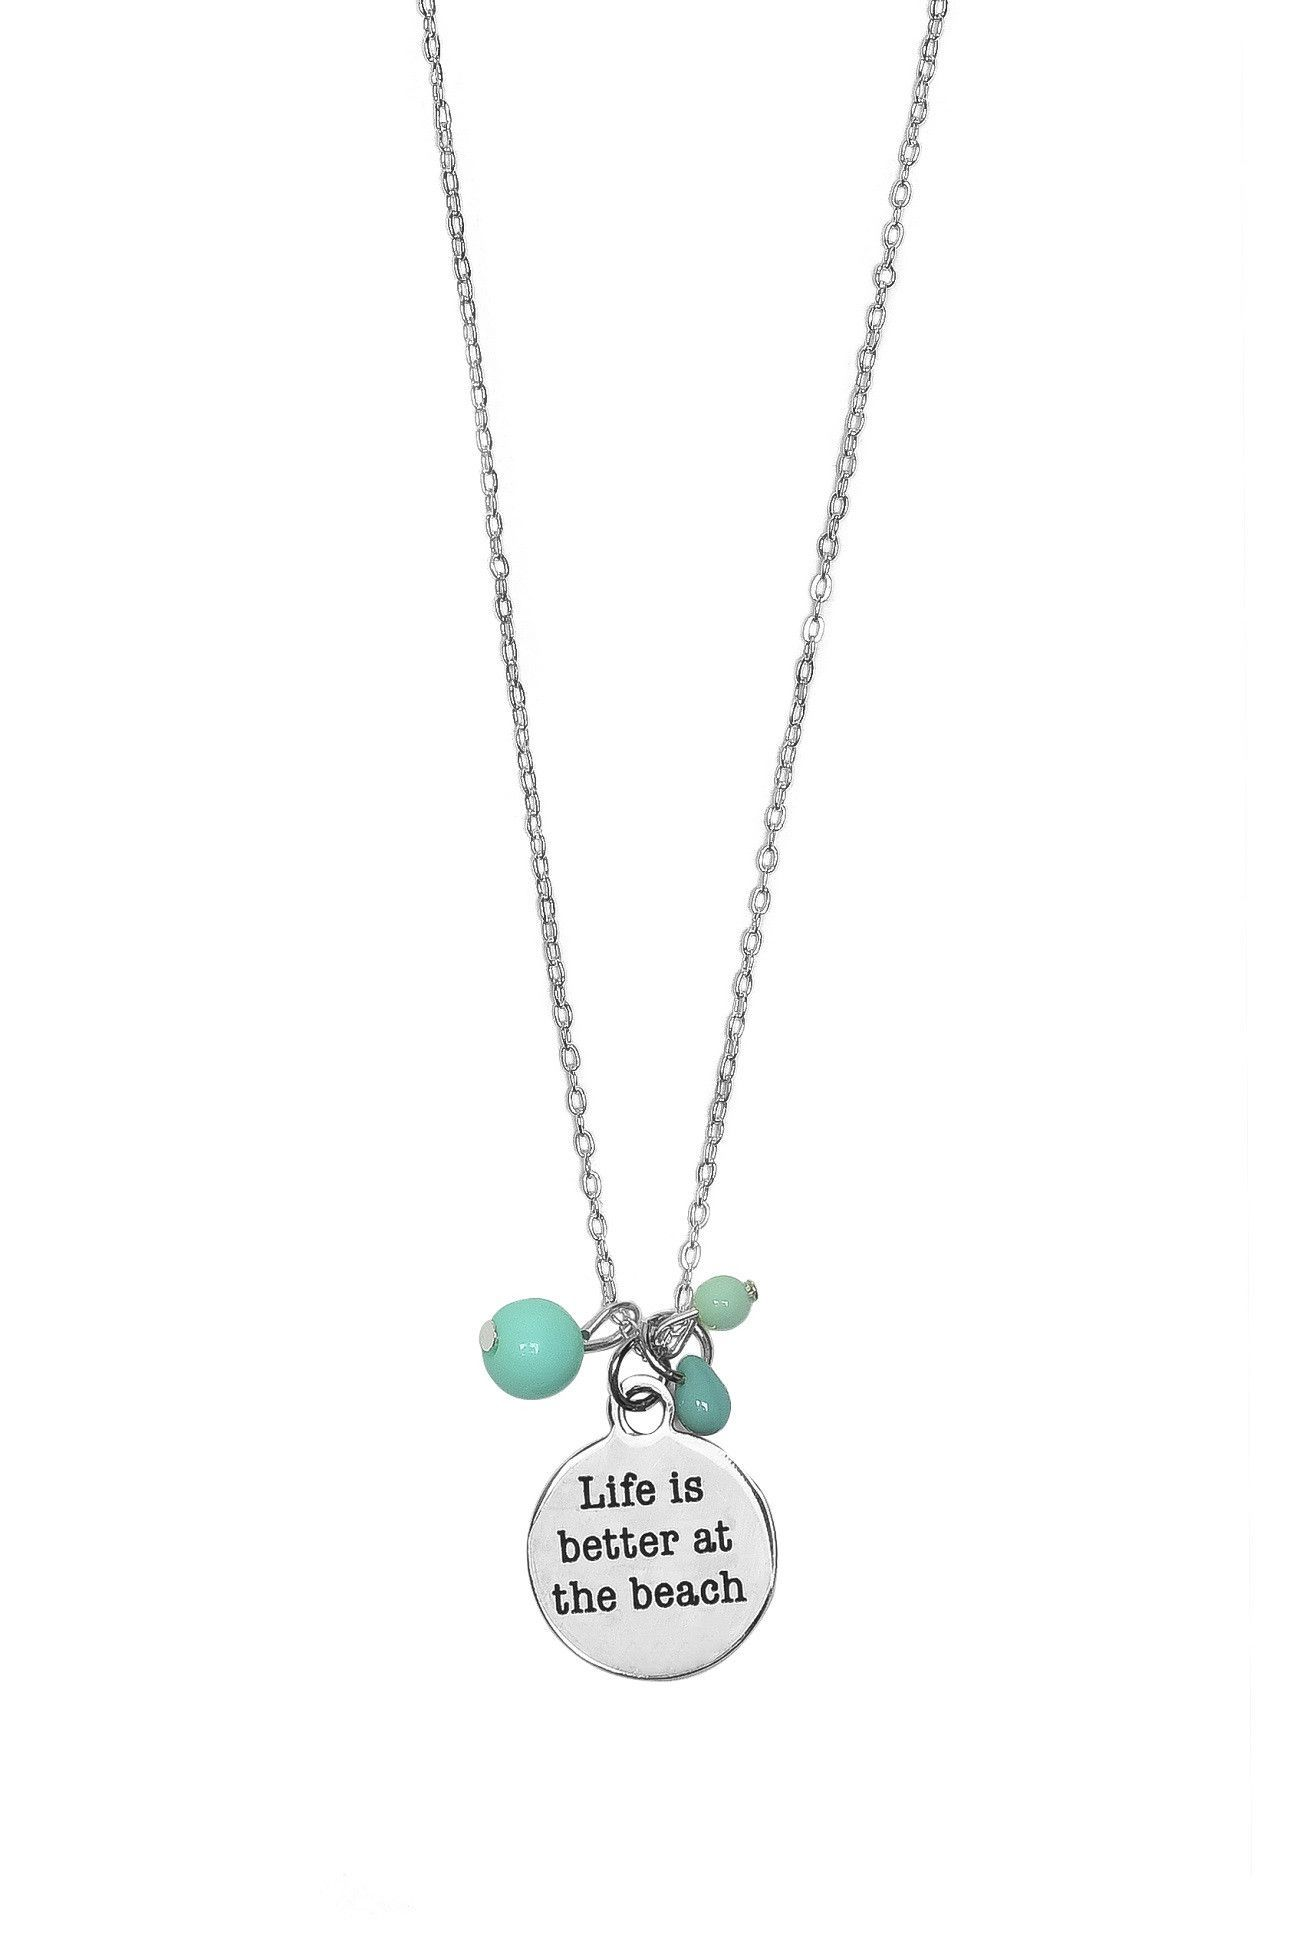 Life is Better at the Beach Necklaces